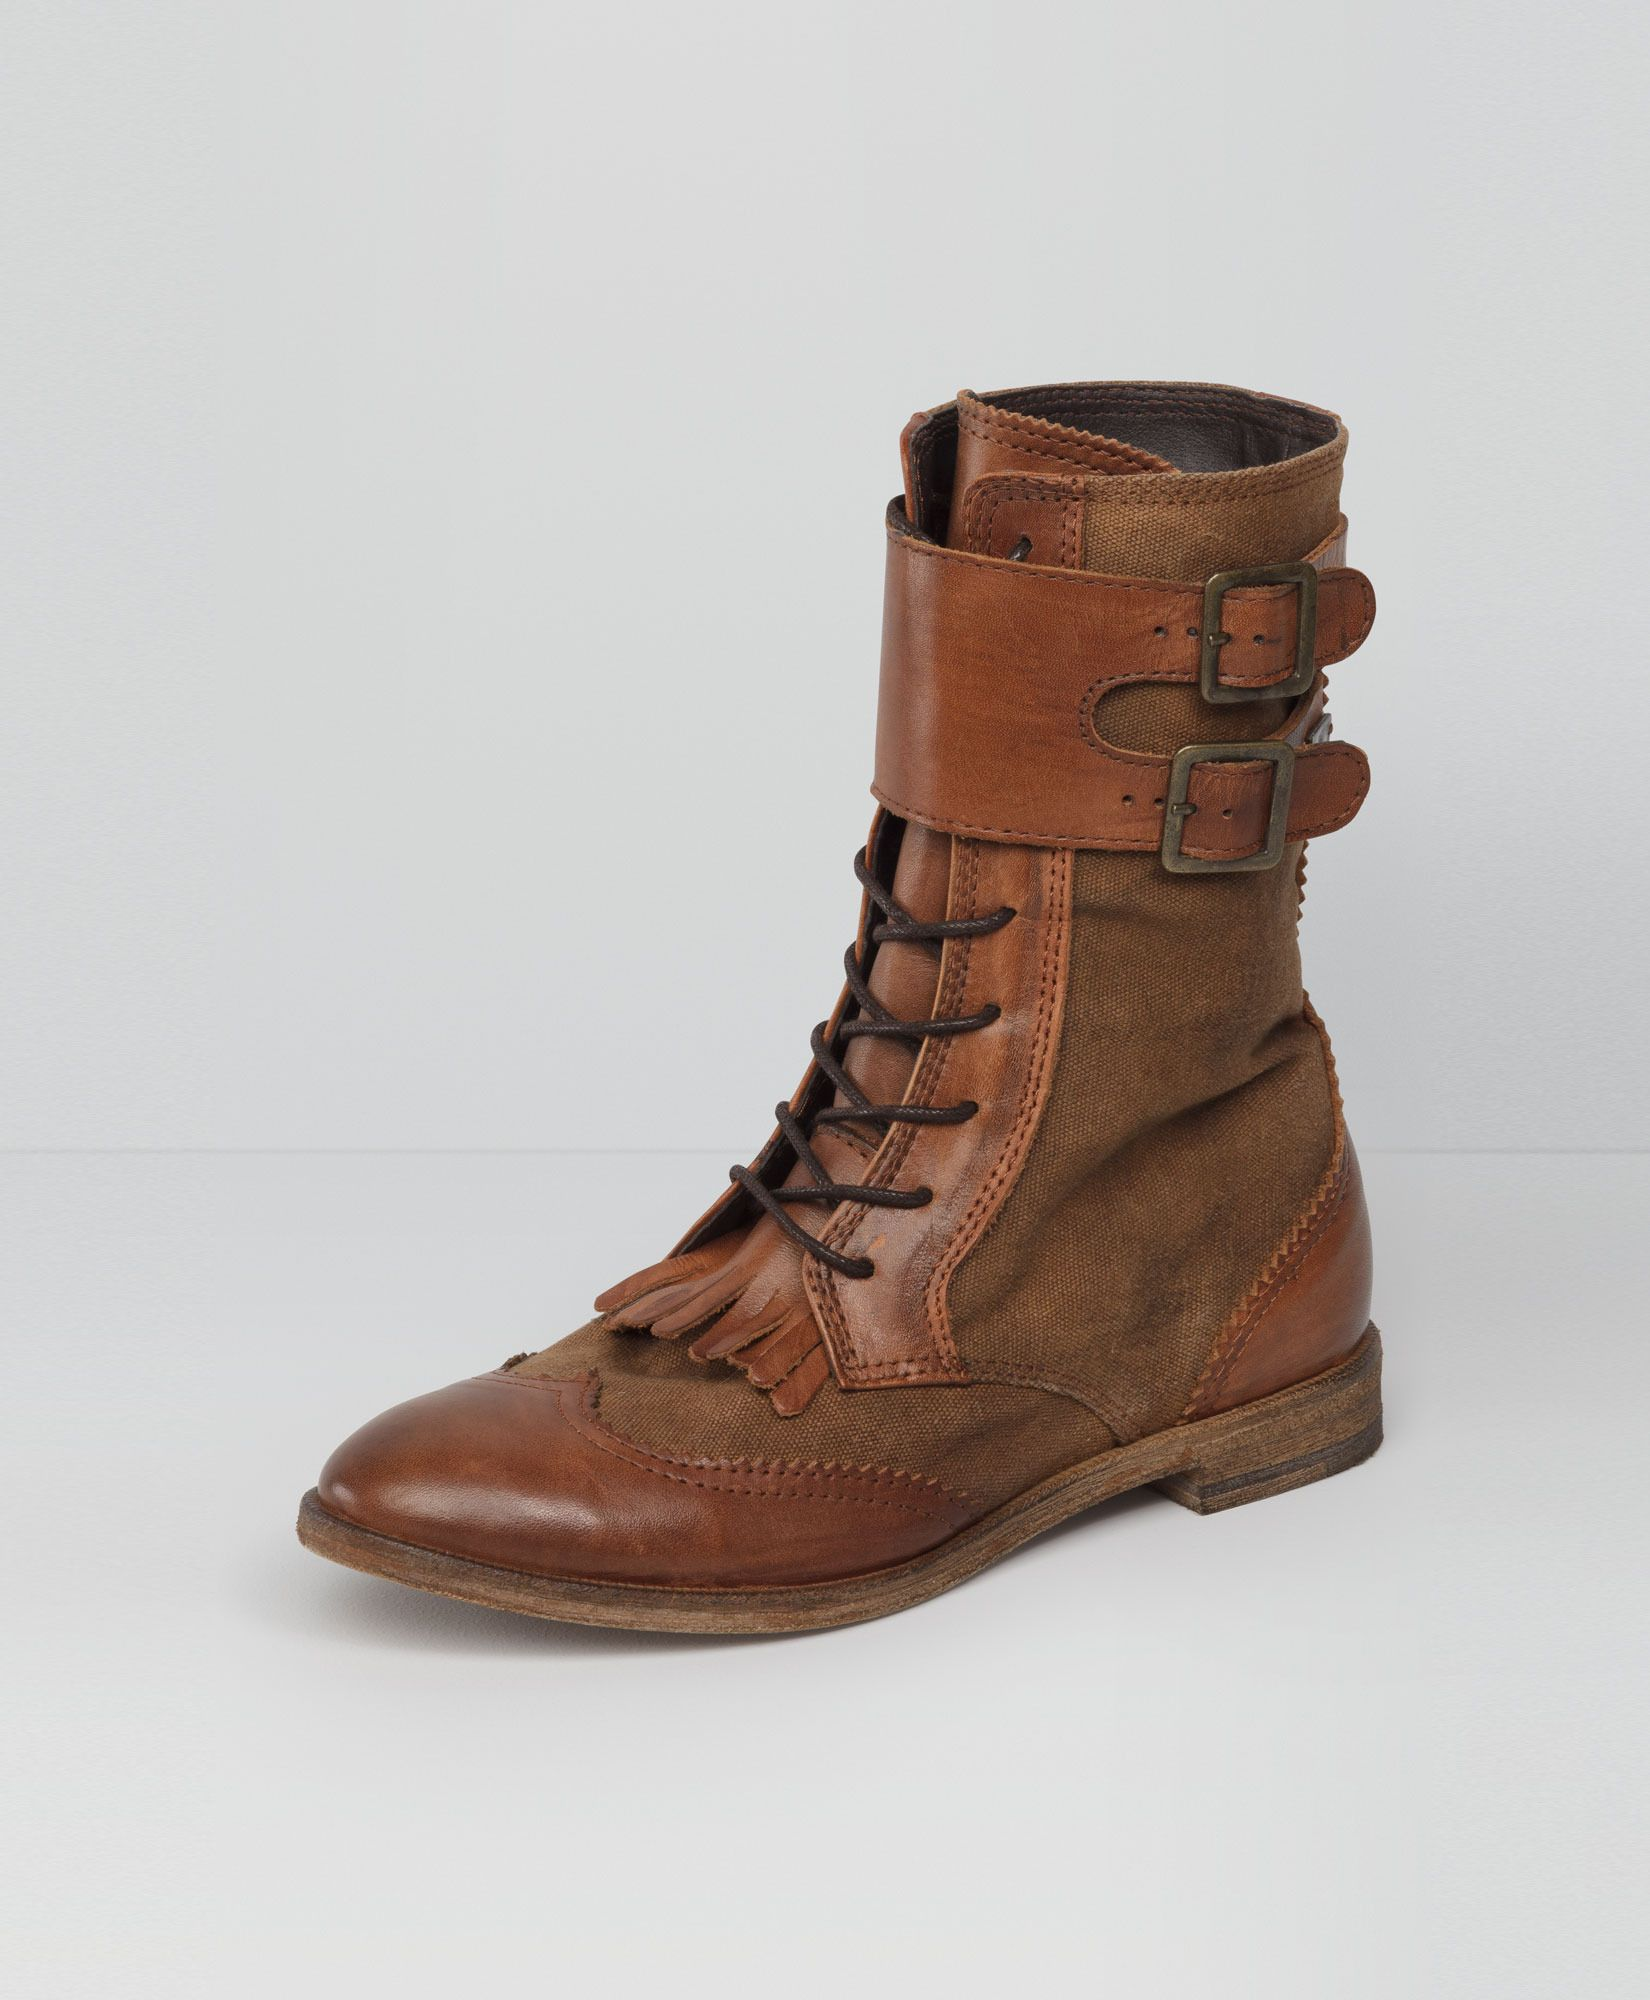 Brogue Buckle Boots   Levi s   My Style   Pinterest   Le pied, Je ... 875f58b33a6d